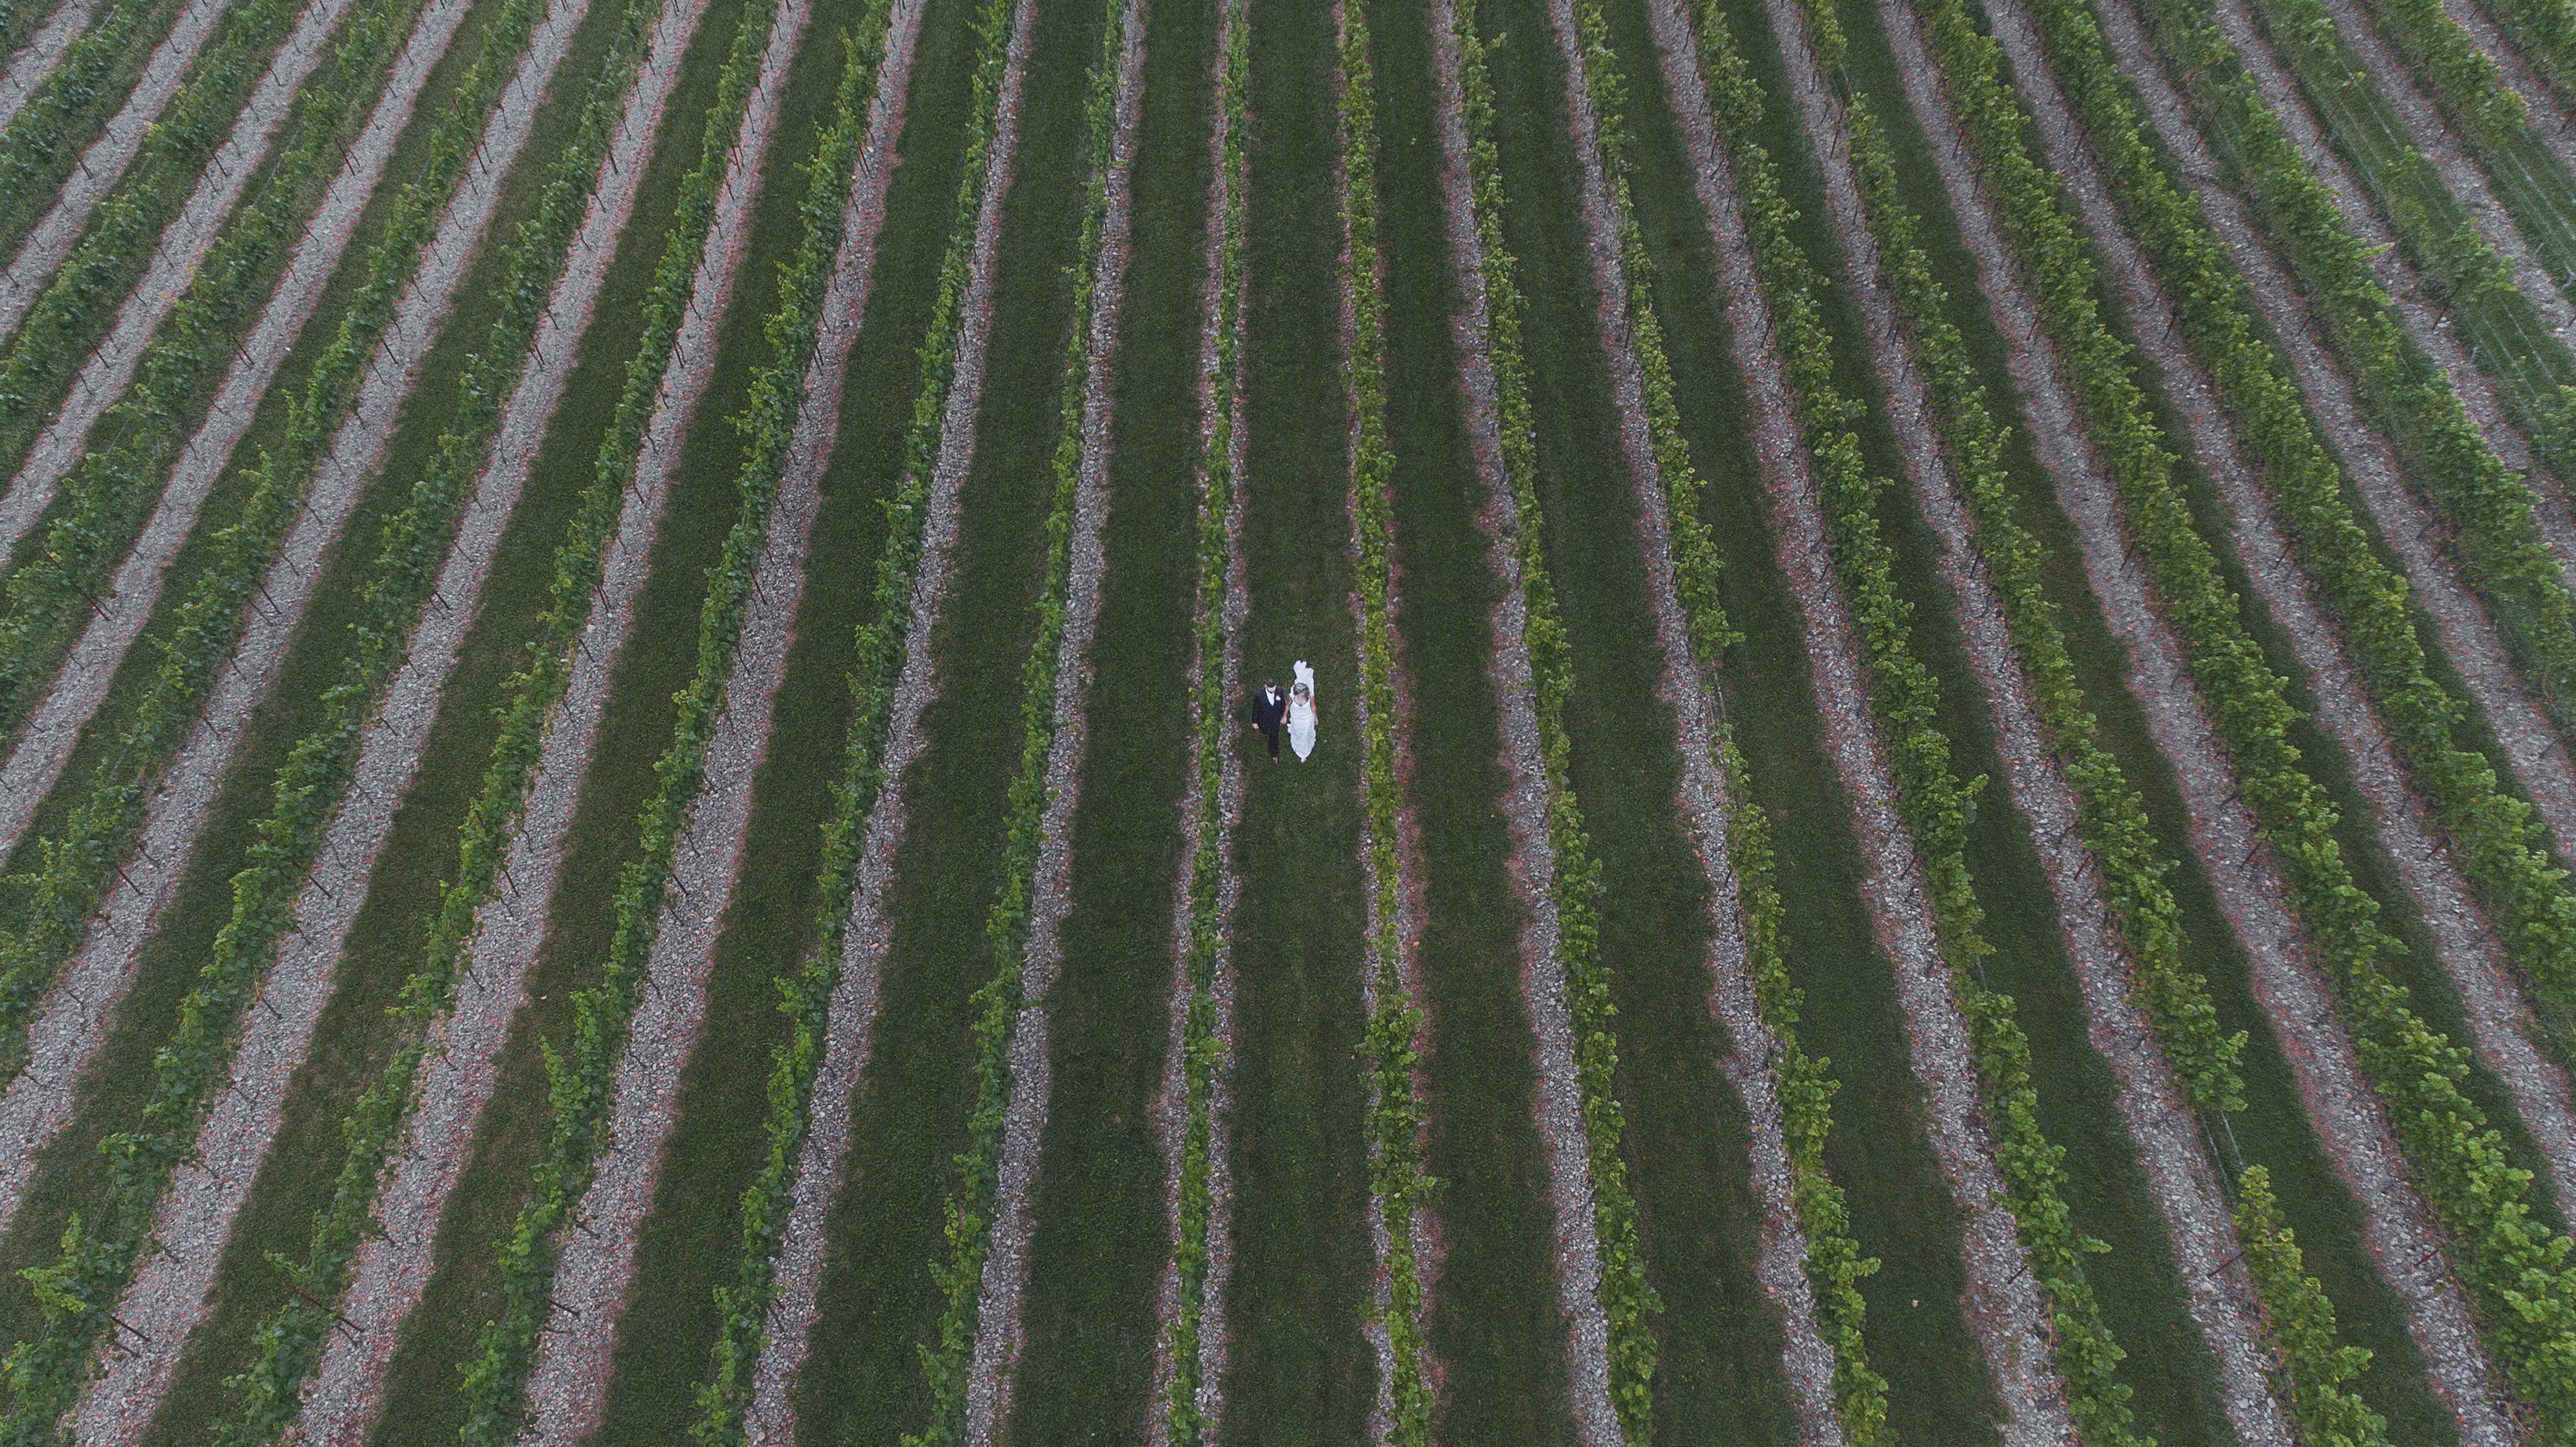 Drone wedding shot from above the vineyard